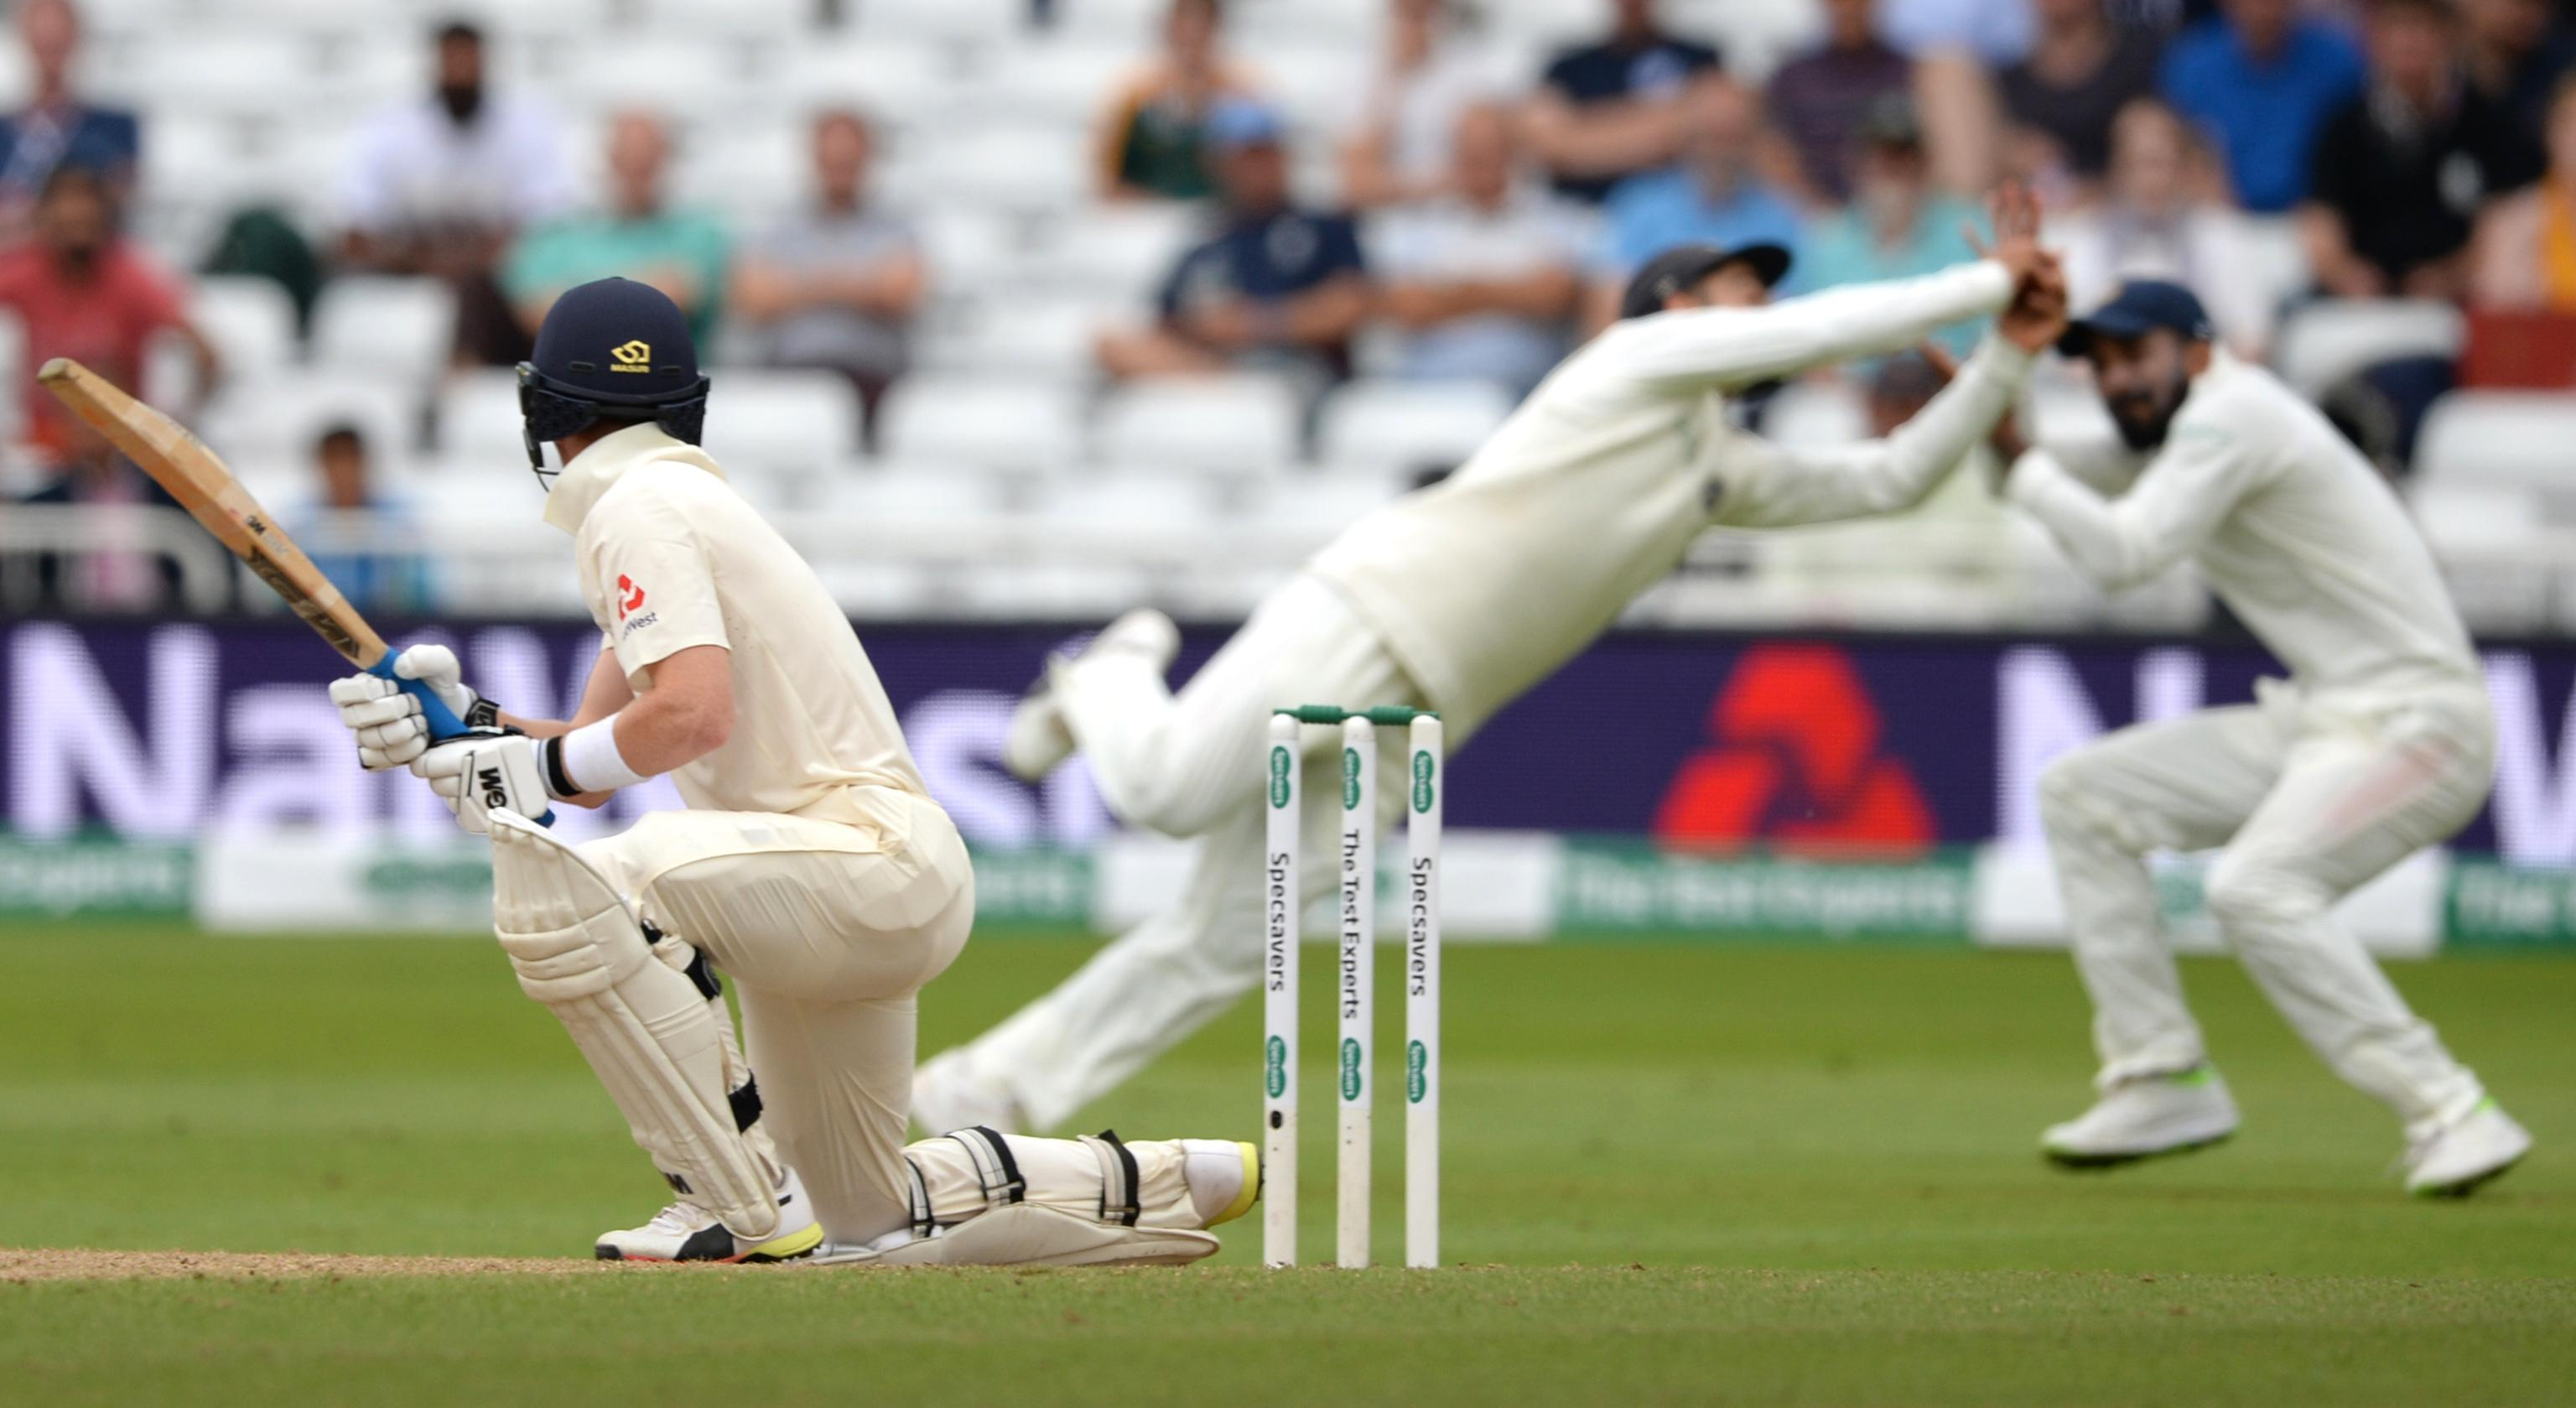 He took a brilliant catch to dismiss England batsman Ollie Pope in the second innings as India narrowed the series deficit to 2-1